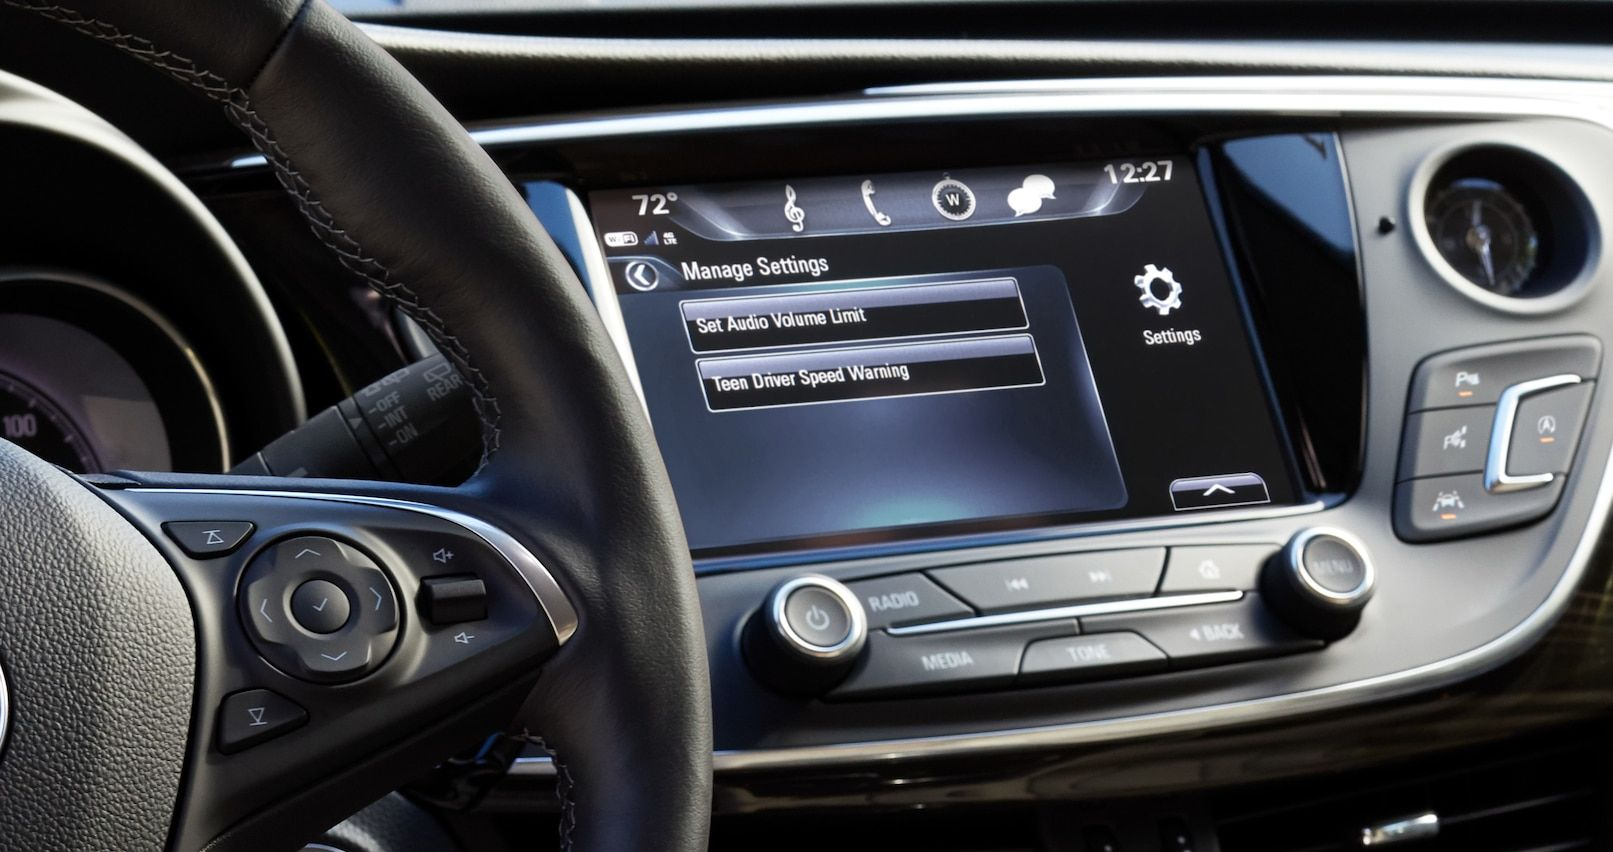 Advanced Technology in the Buick Envision